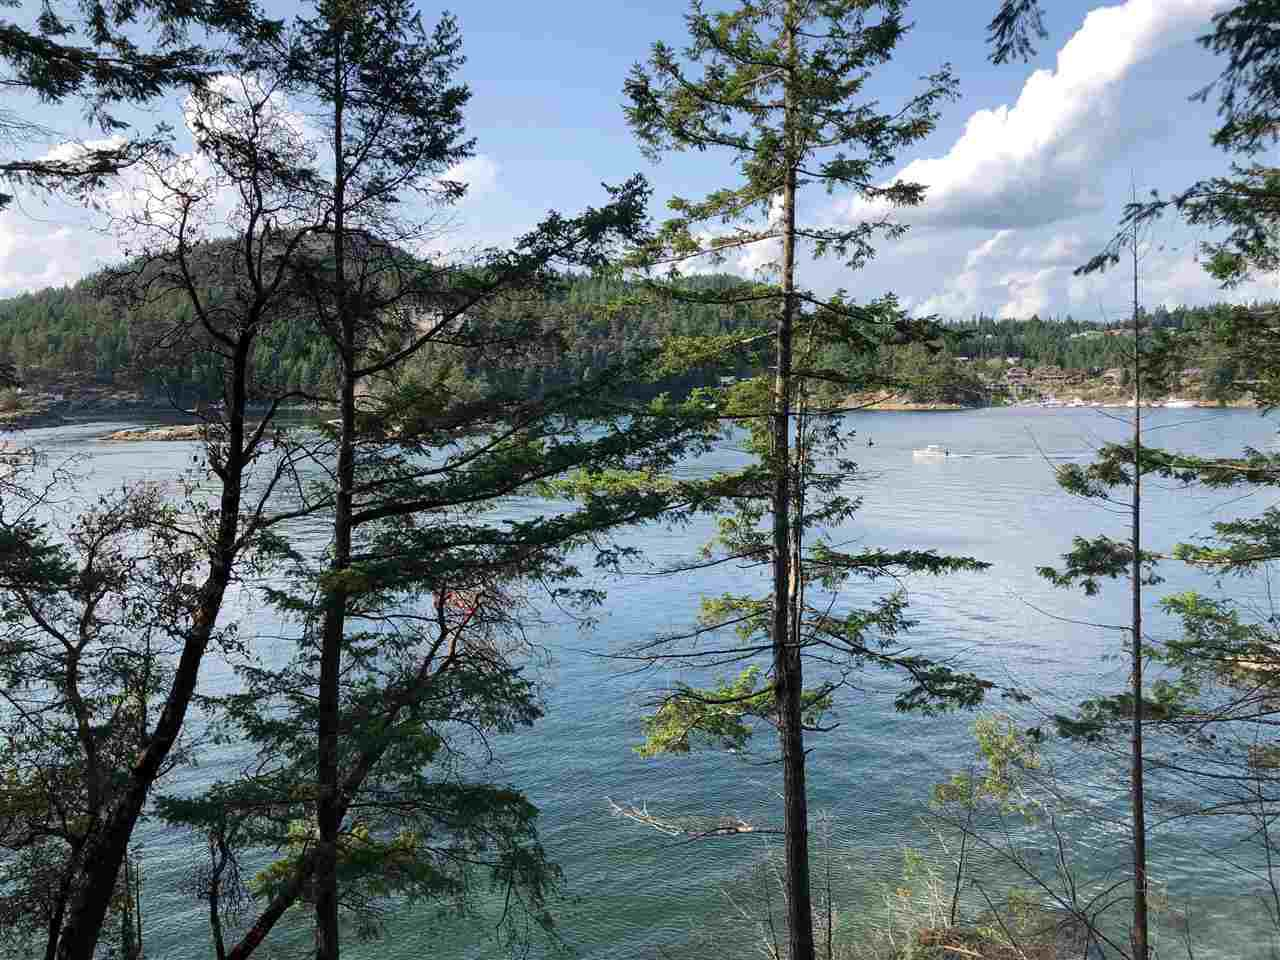 """Photo 9: Photos: 4147 FRANCIS PENINSULA Road in Madeira Park: Pender Harbour Egmont Land for sale in """"BEAVER ISLAND"""" (Sunshine Coast)  : MLS®# R2393294"""